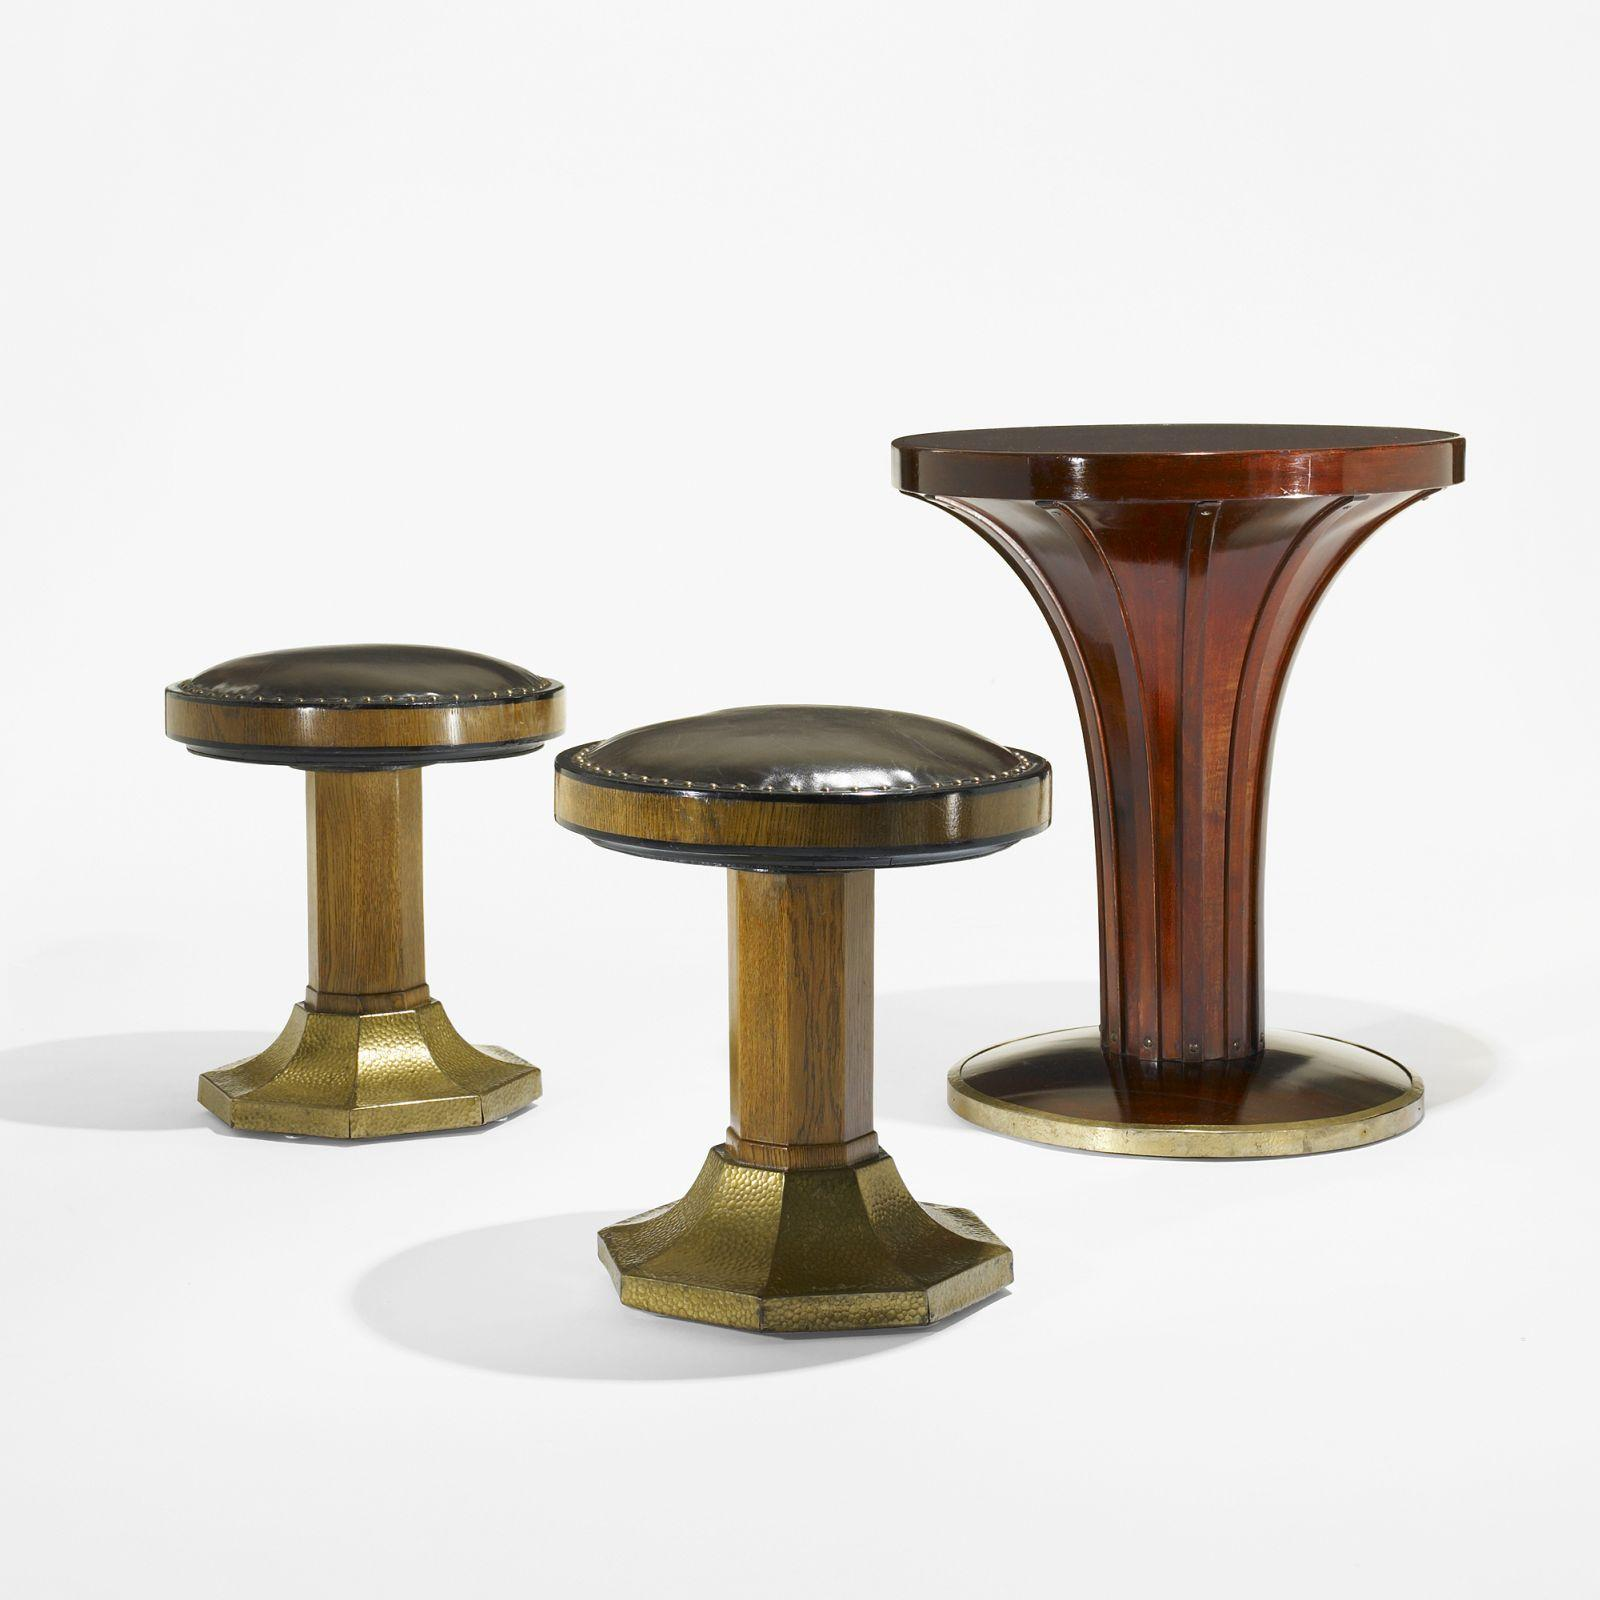 Otto prutscher lamp table mozeypictures Image collections